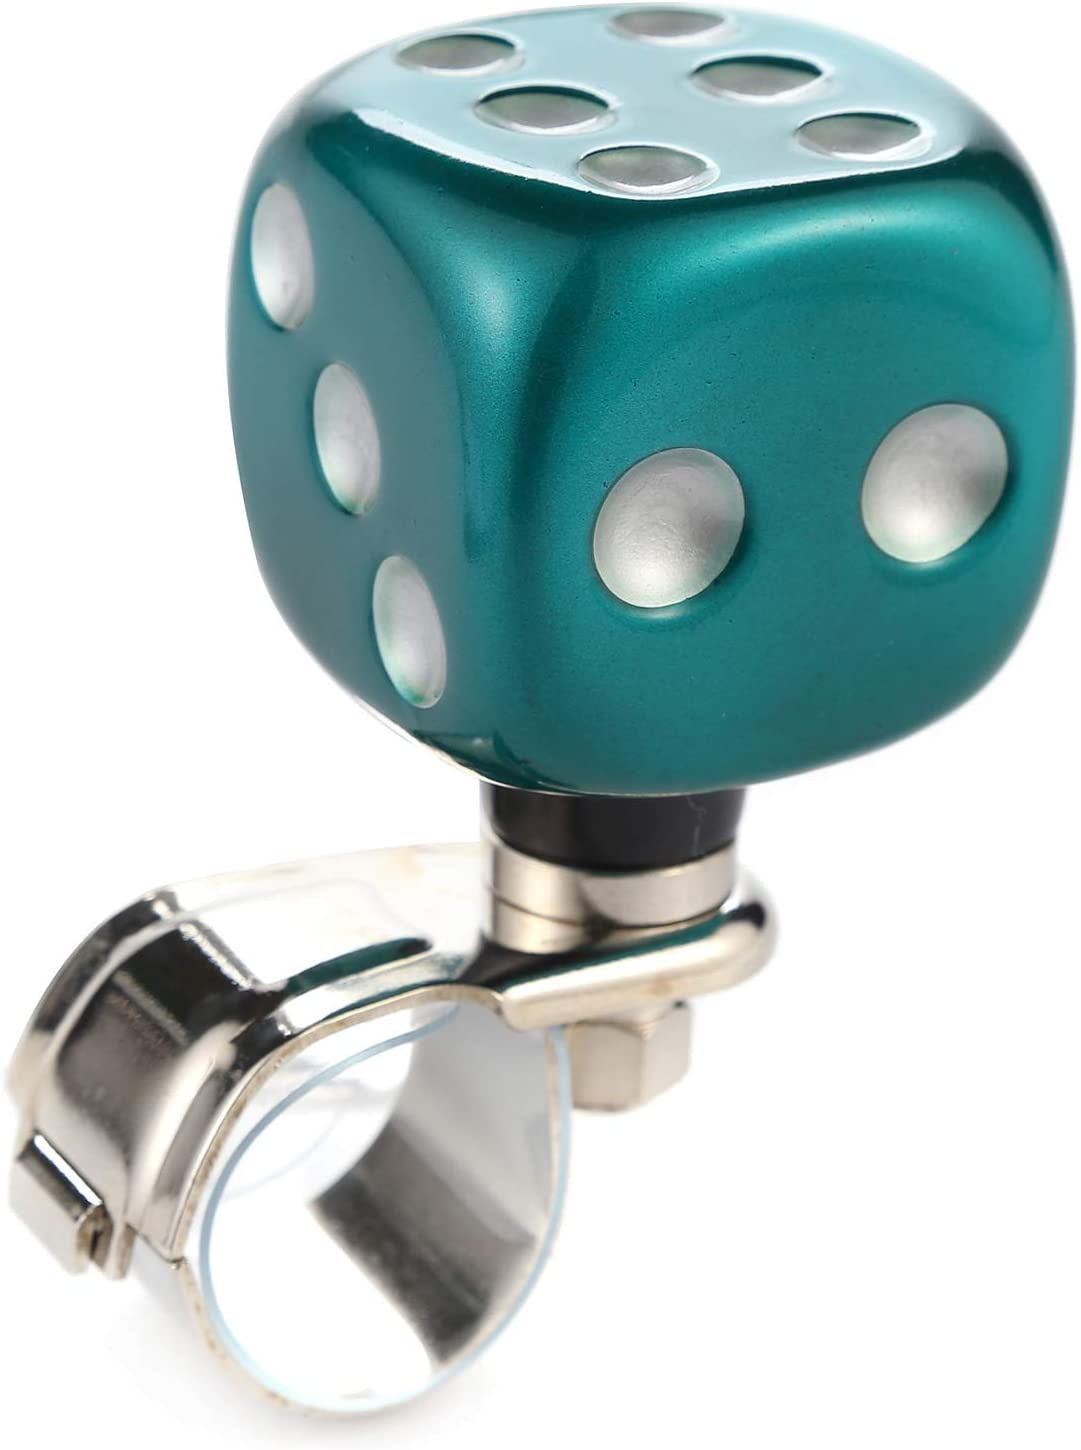 Arenbel Steering Wheel Knob Dice Shape Suicide Spinner Power Handle Wheel Driving Knobs fit Most Universal Car Truck Tractor Boat, Green, White